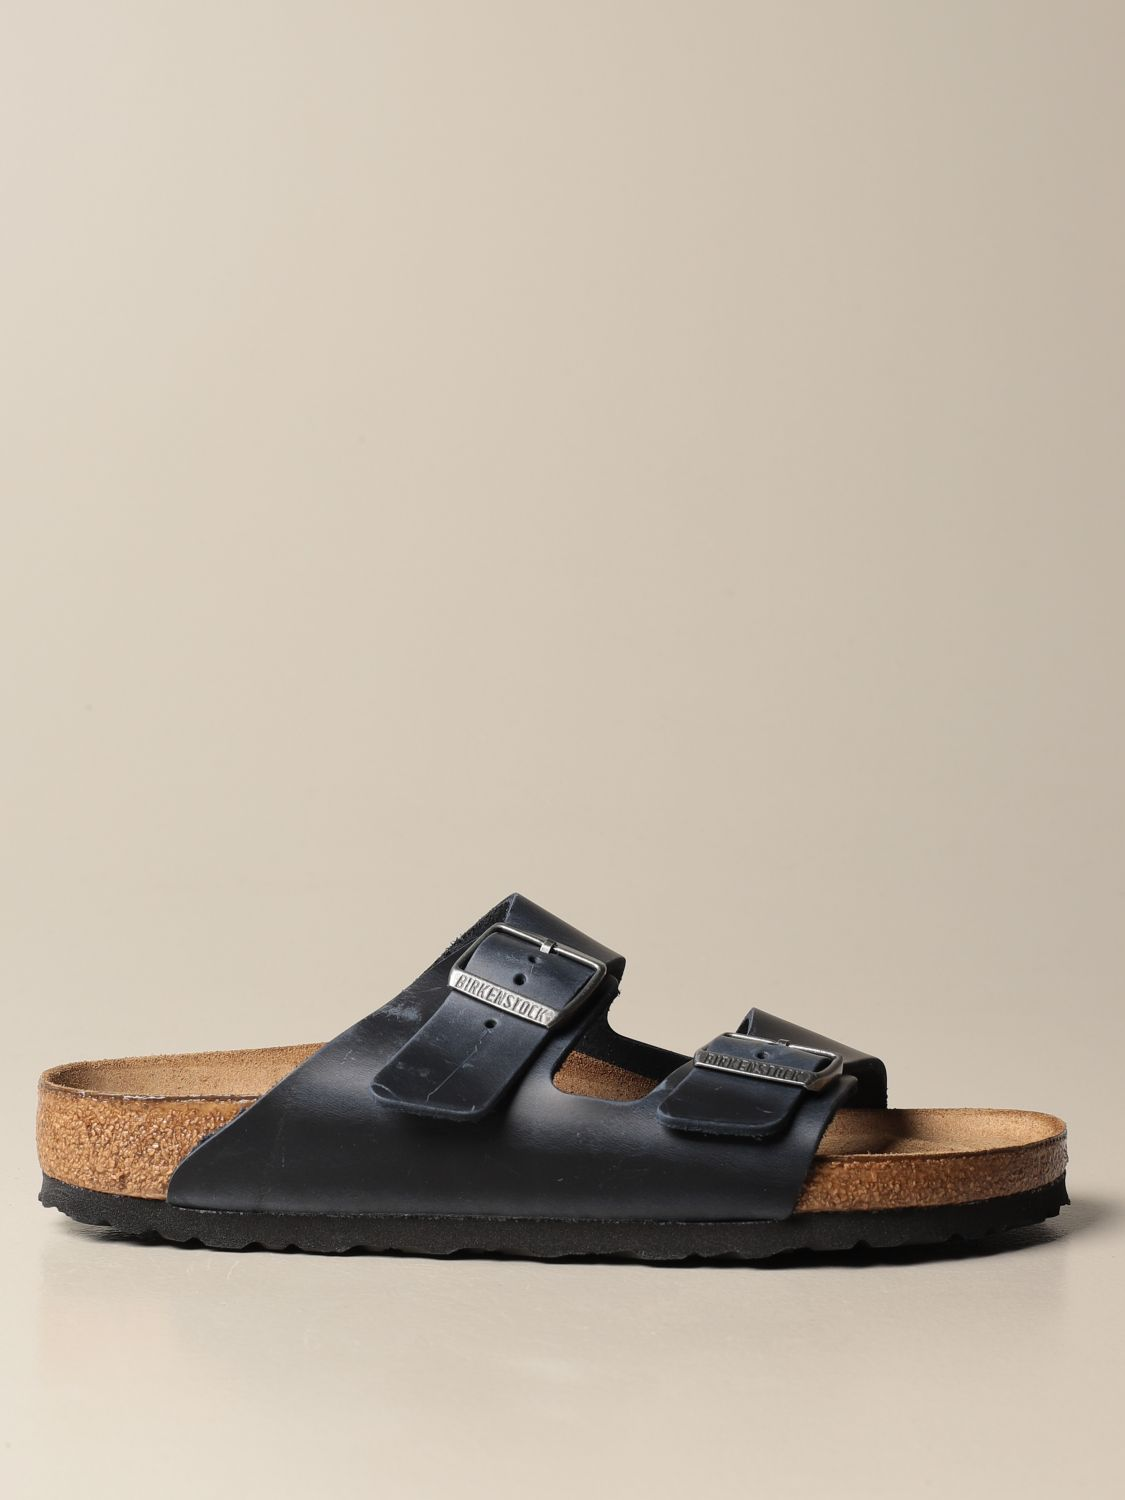 Sandals Birkenstock: Shoes men Birkenstock navy 1